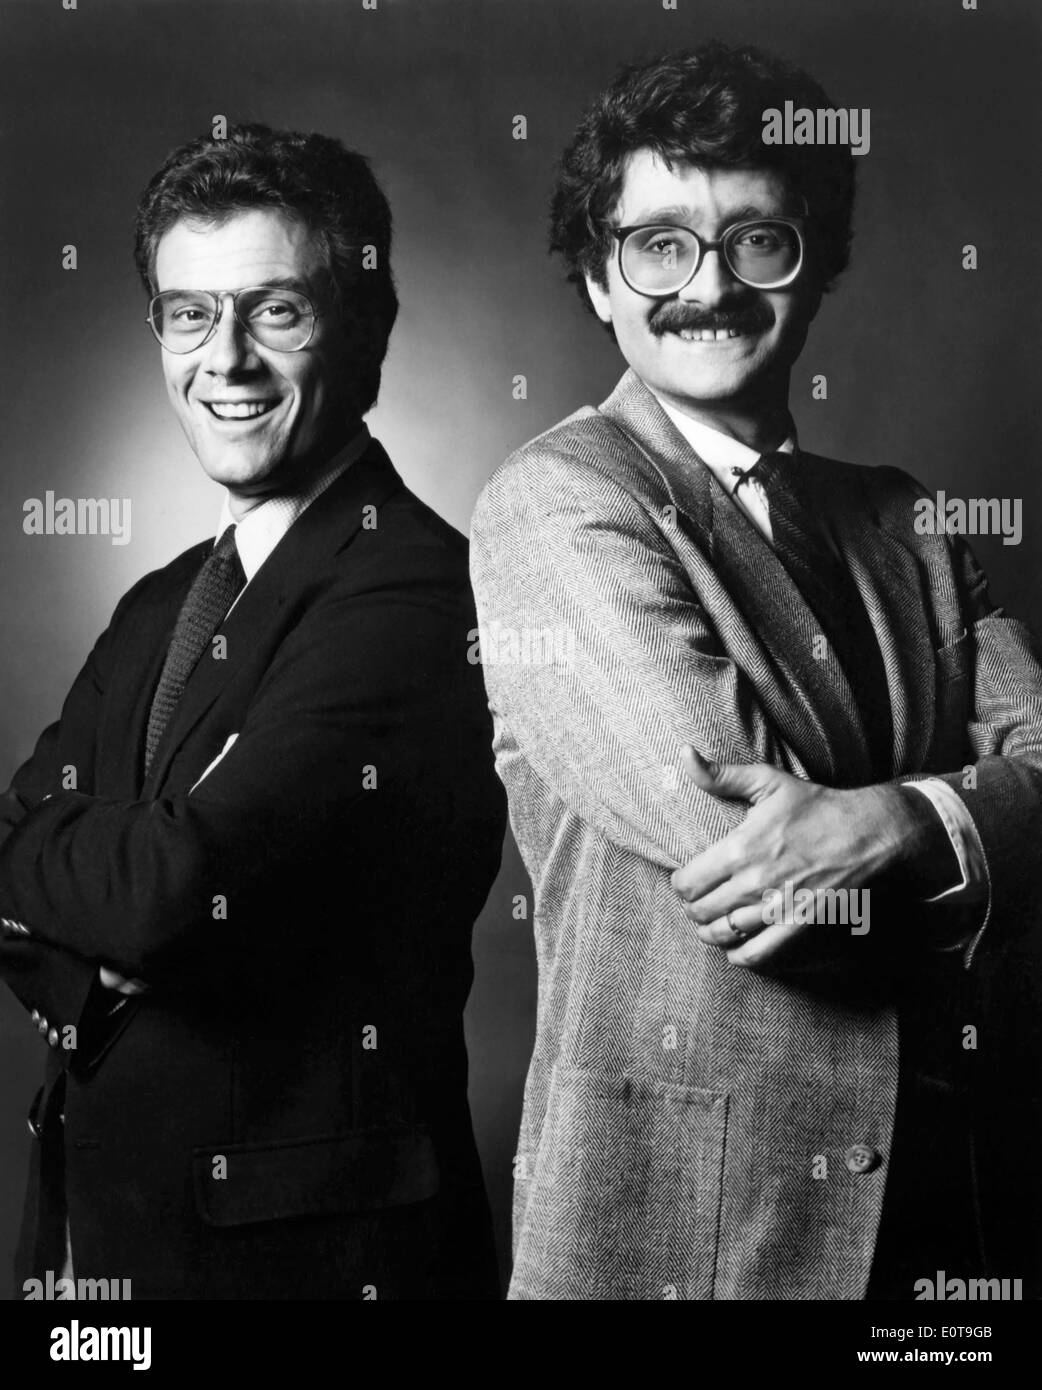 Jeffrey Lyons and Michael Medved, American Film Critics, Publicity Portrait for their Television Show, 'Sneak Previews', 1986 - Stock Image